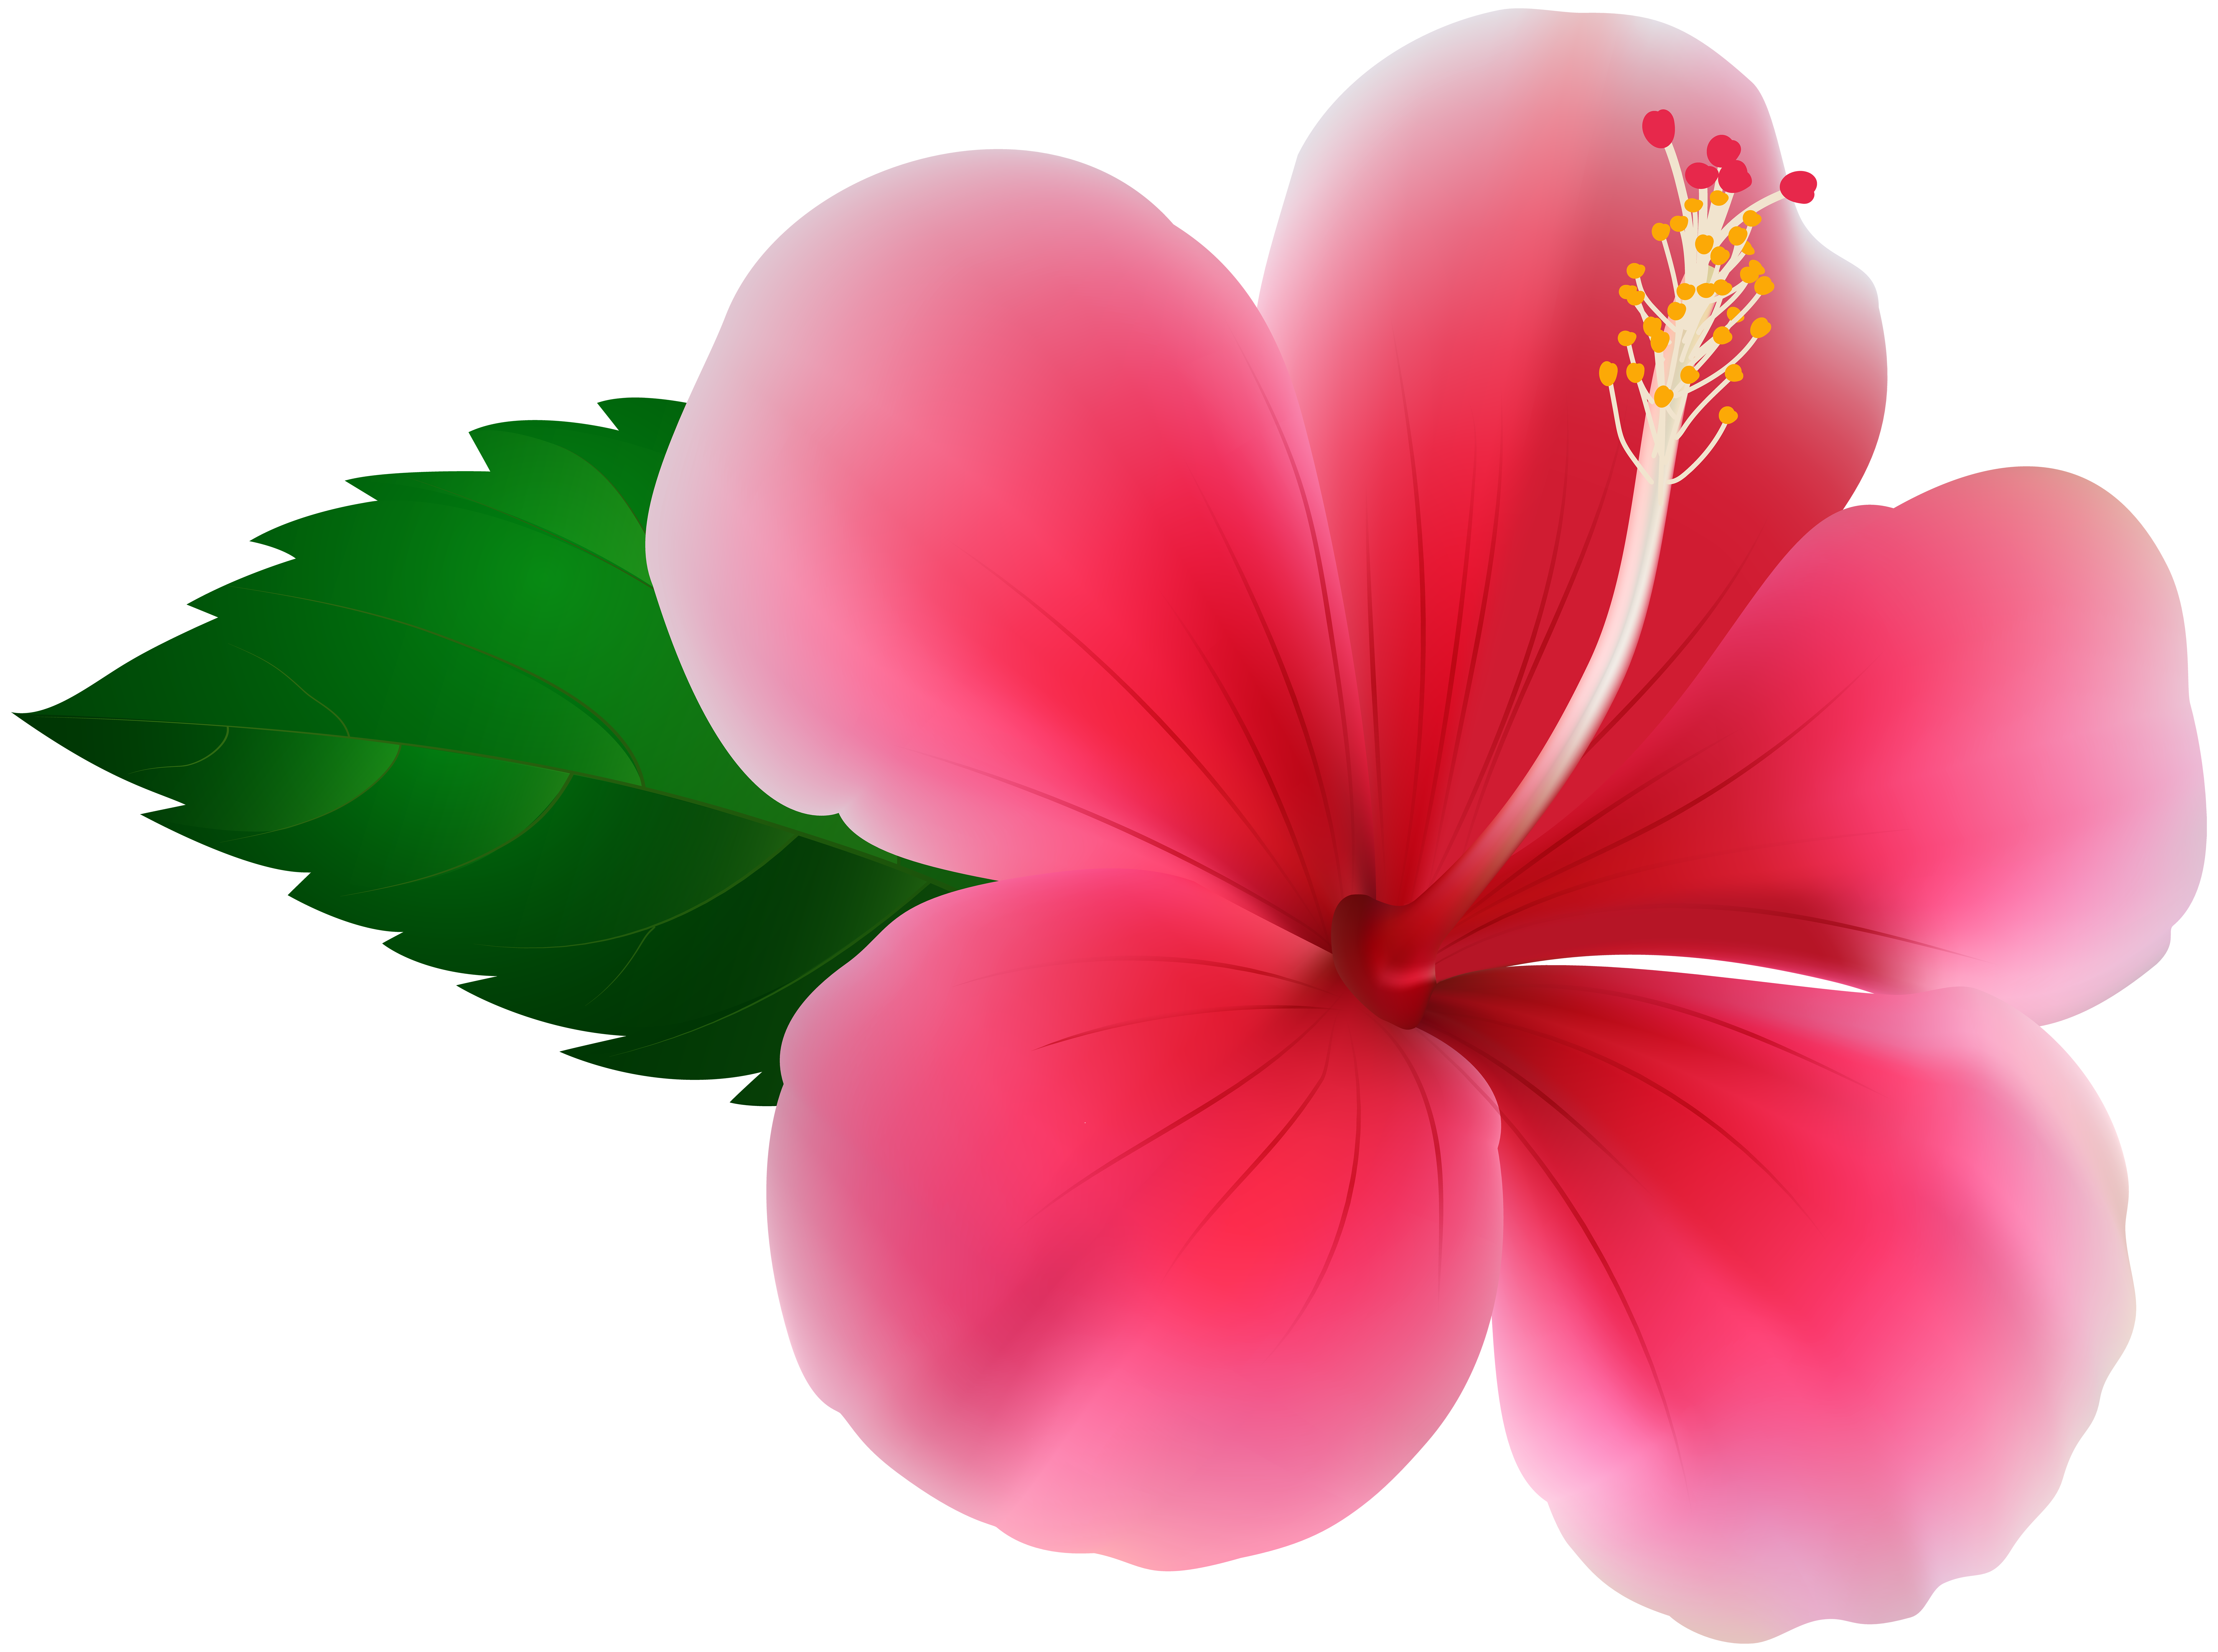 Hibiscus clipart images clipart freeuse download Pink Hibiscus PNG Clip Art Image | Gallery Yopriceville - High ... clipart freeuse download